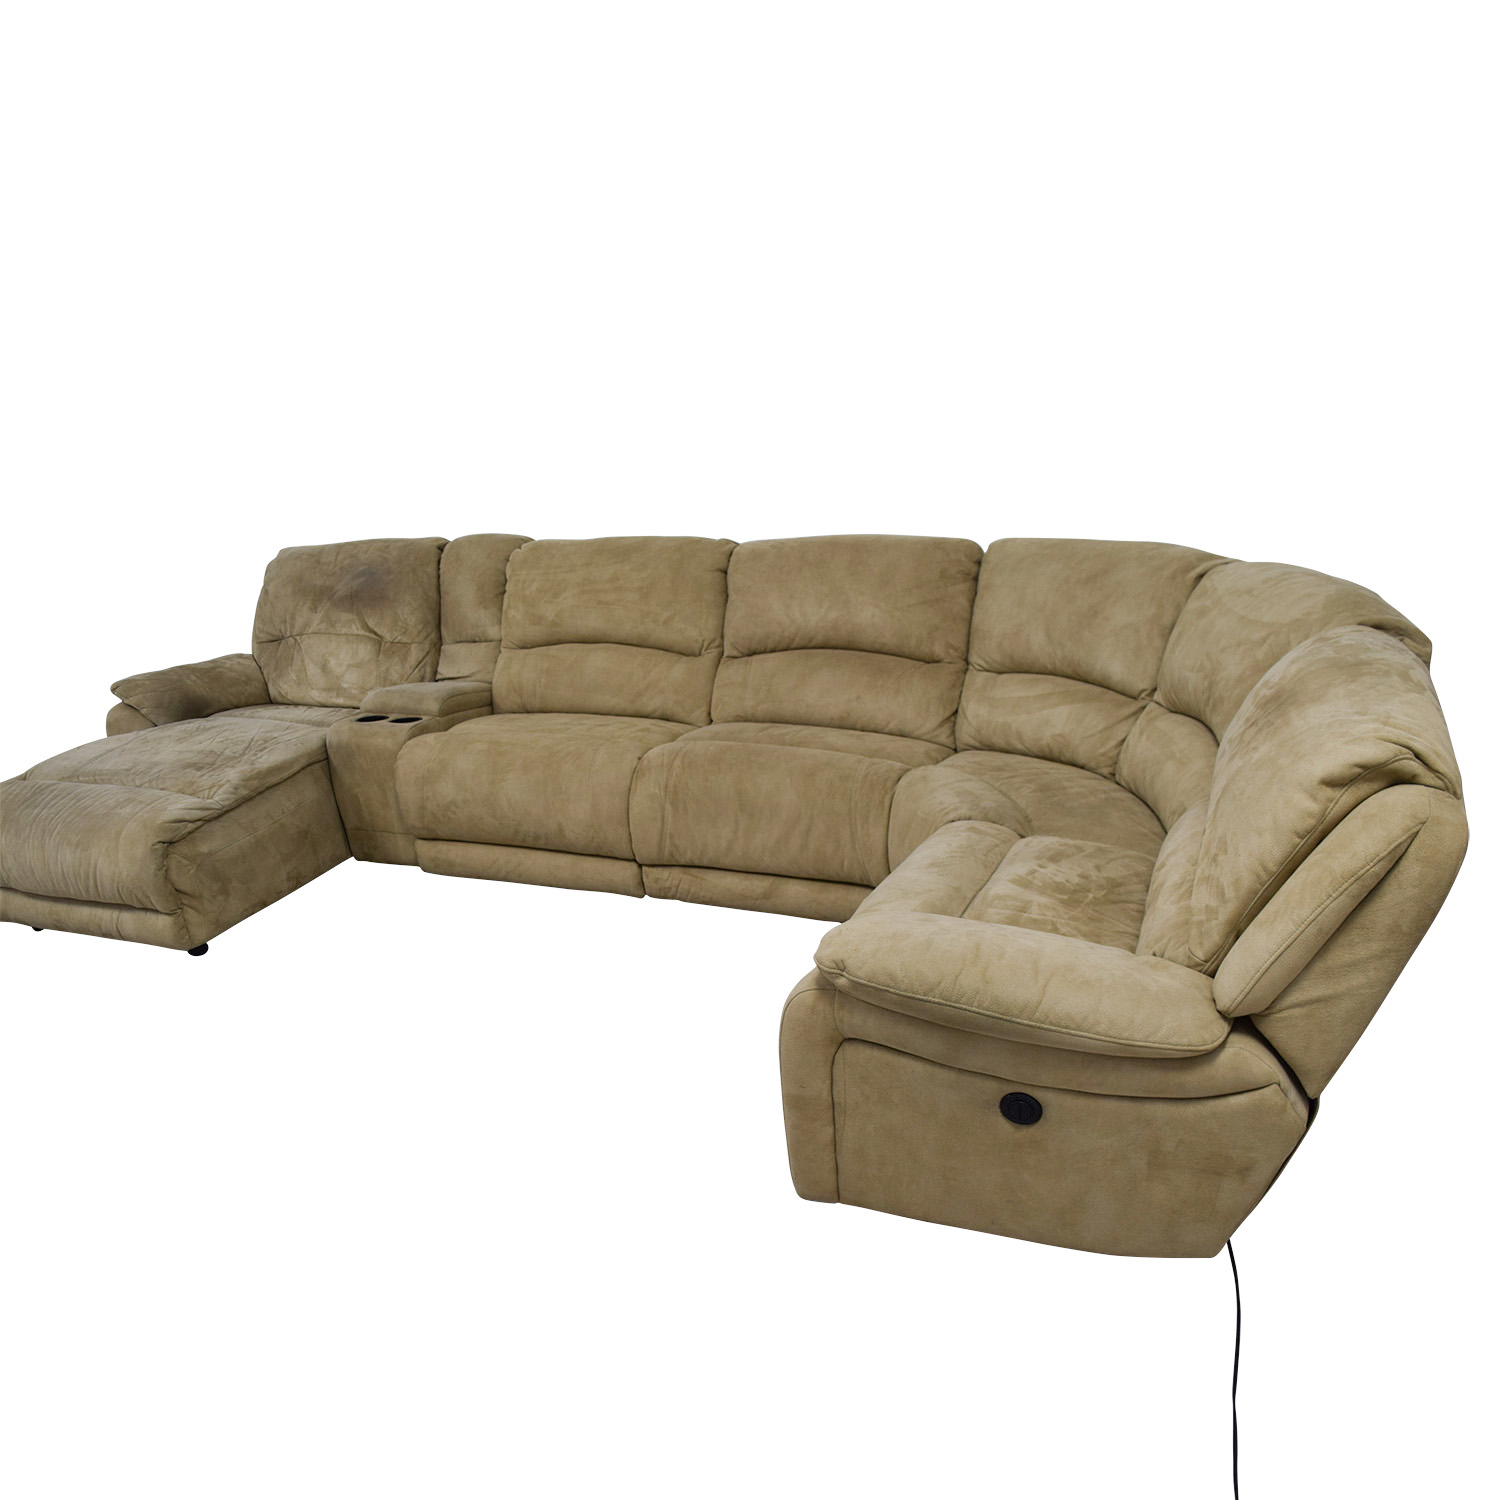 Groovy 68 Off Raymour Flanigan Raymour Flanigan Cindy Crawford Mackenzie Microfiber Power Reclining Sectional Sofas Unemploymentrelief Wooden Chair Designs For Living Room Unemploymentrelieforg